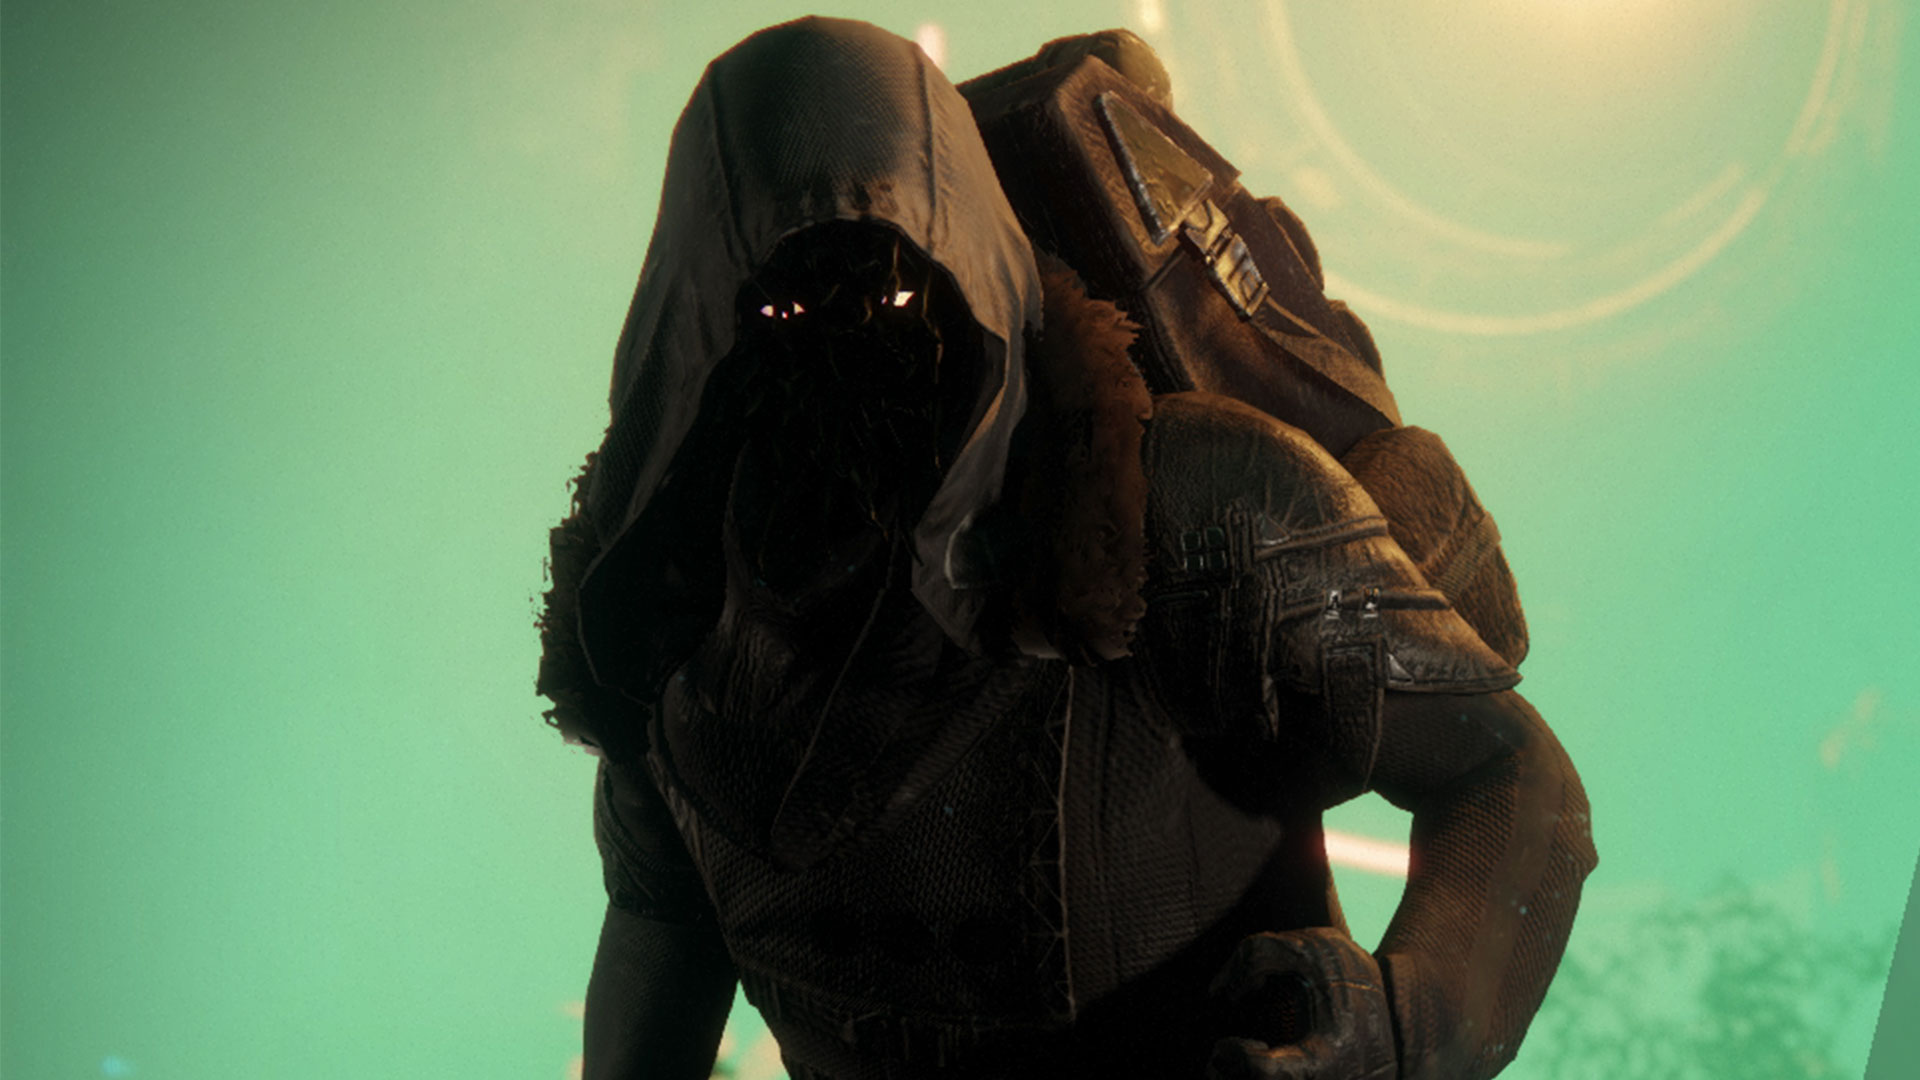 Destiny 2 Xur location and items, July 19-22